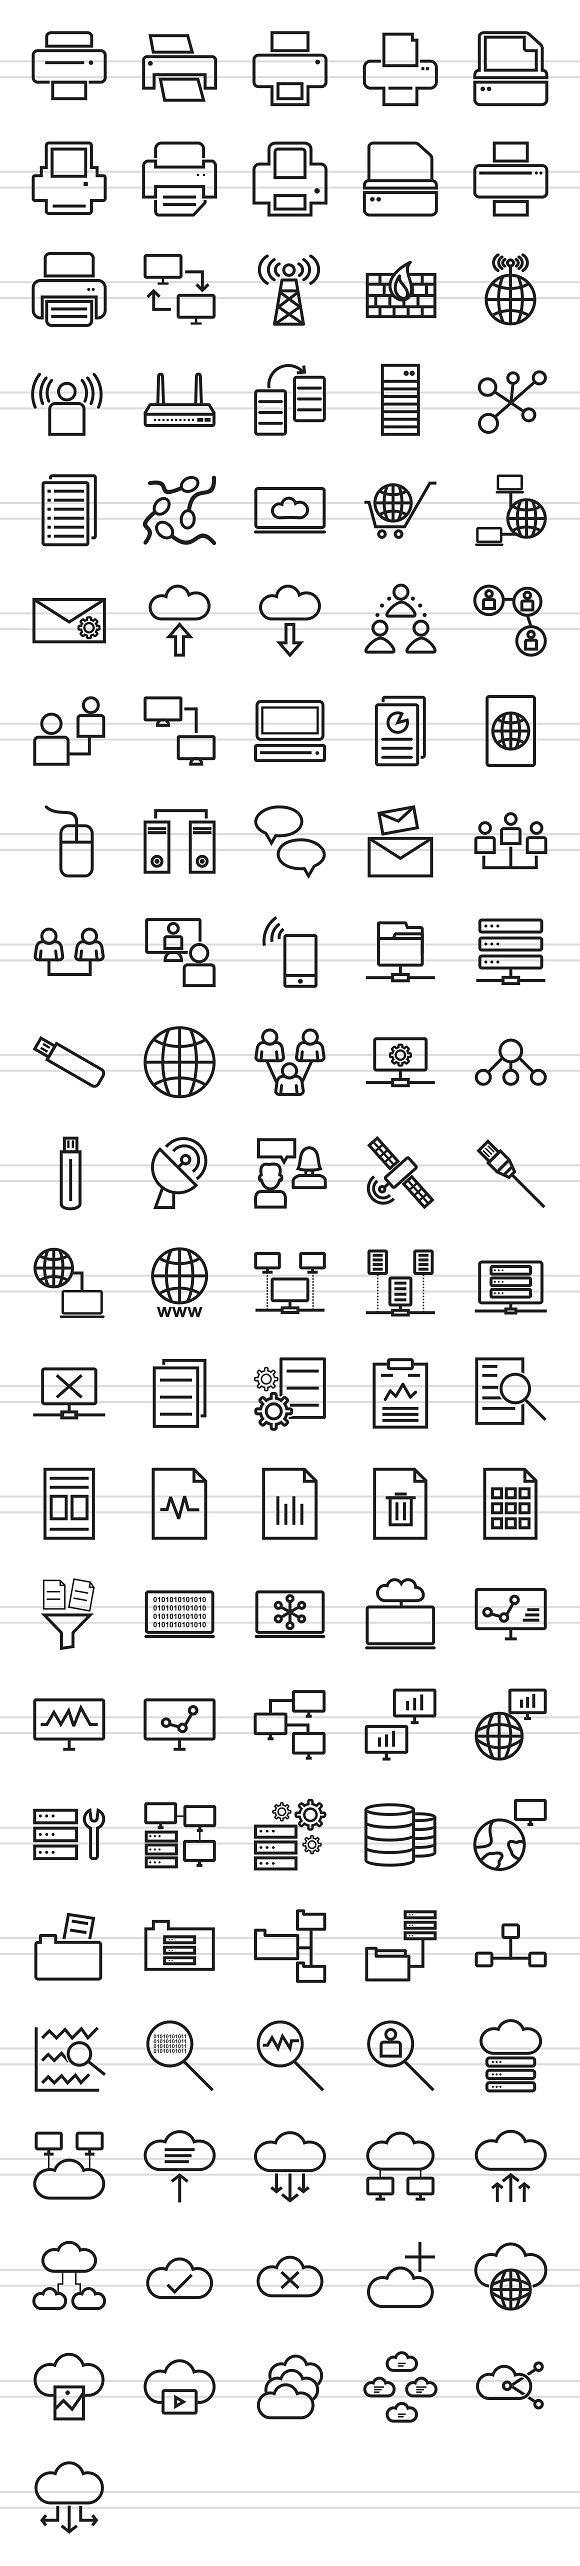 111 Networking & Printers Line Icons in Graphics - product preview 1